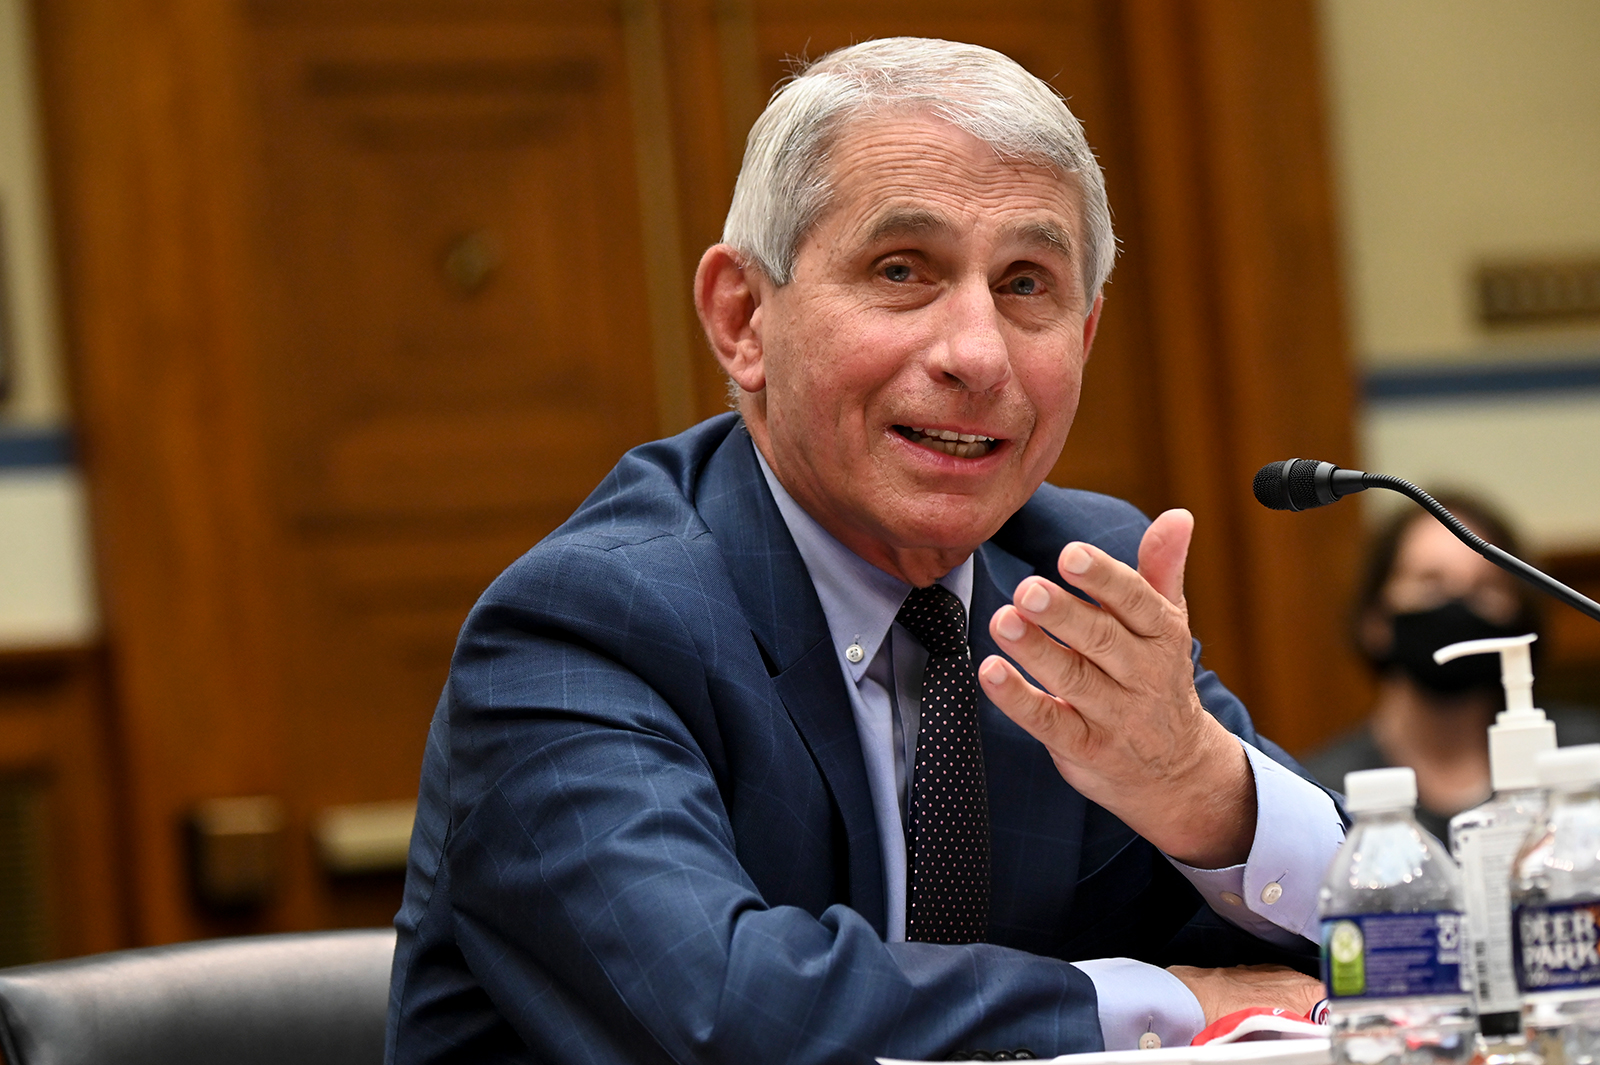 Anthony Fauci, director of the National Institute of Allergy and Infectious Diseases, testifies during a House Select Subcommittee on the Coronavirus Crisis hearing on July 31 in Washington.